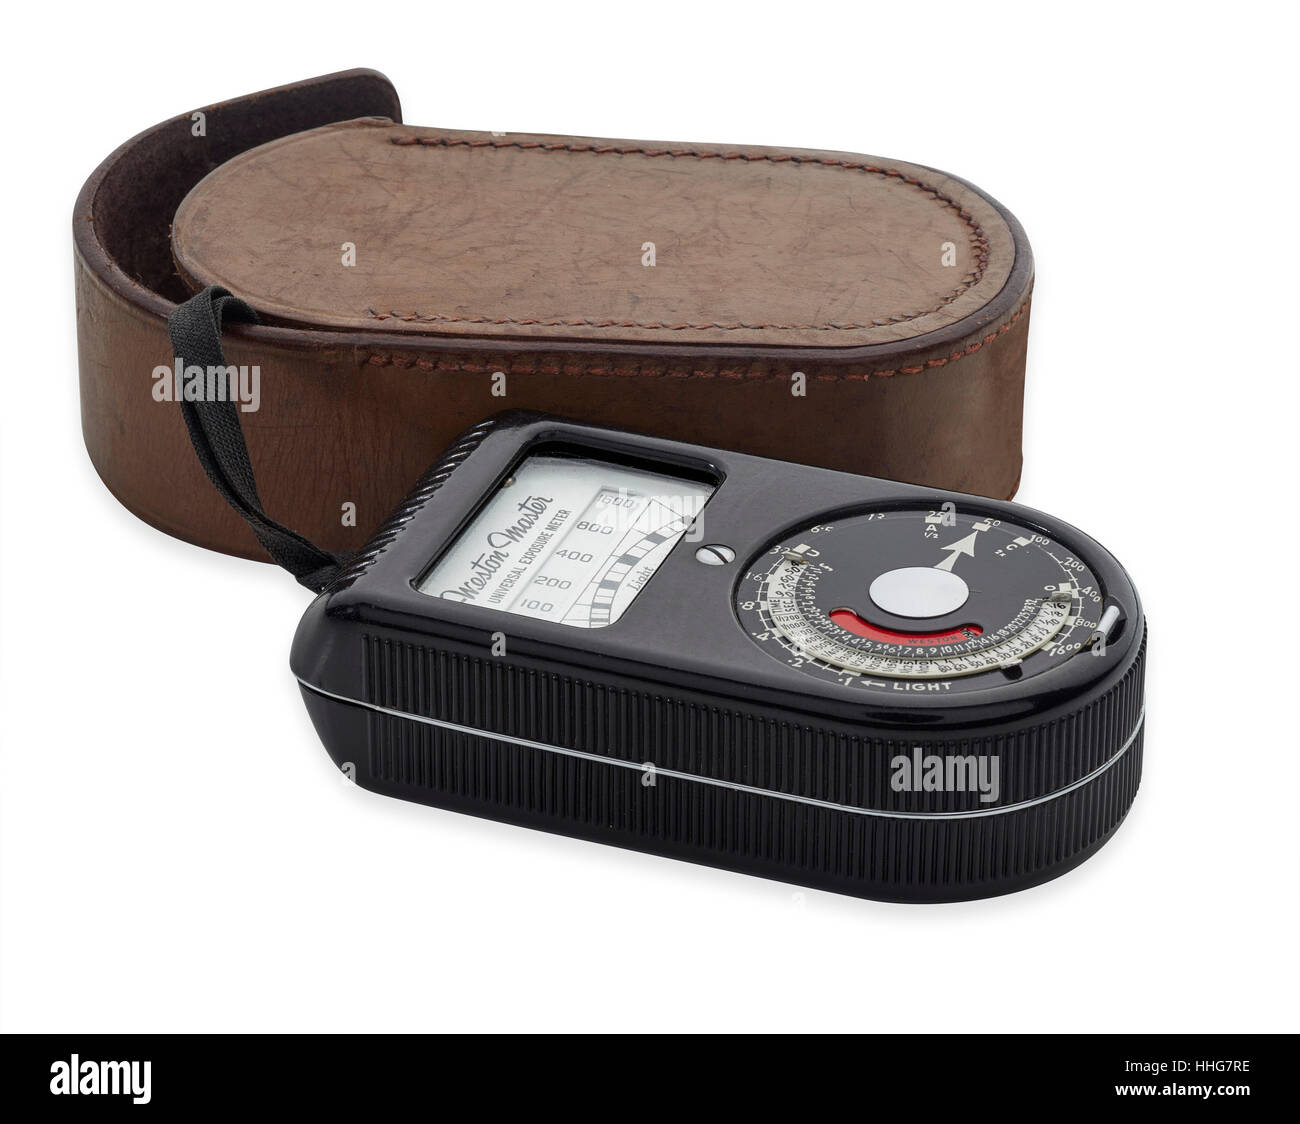 Weston Master, Universal Exposure Meter - Stock Image